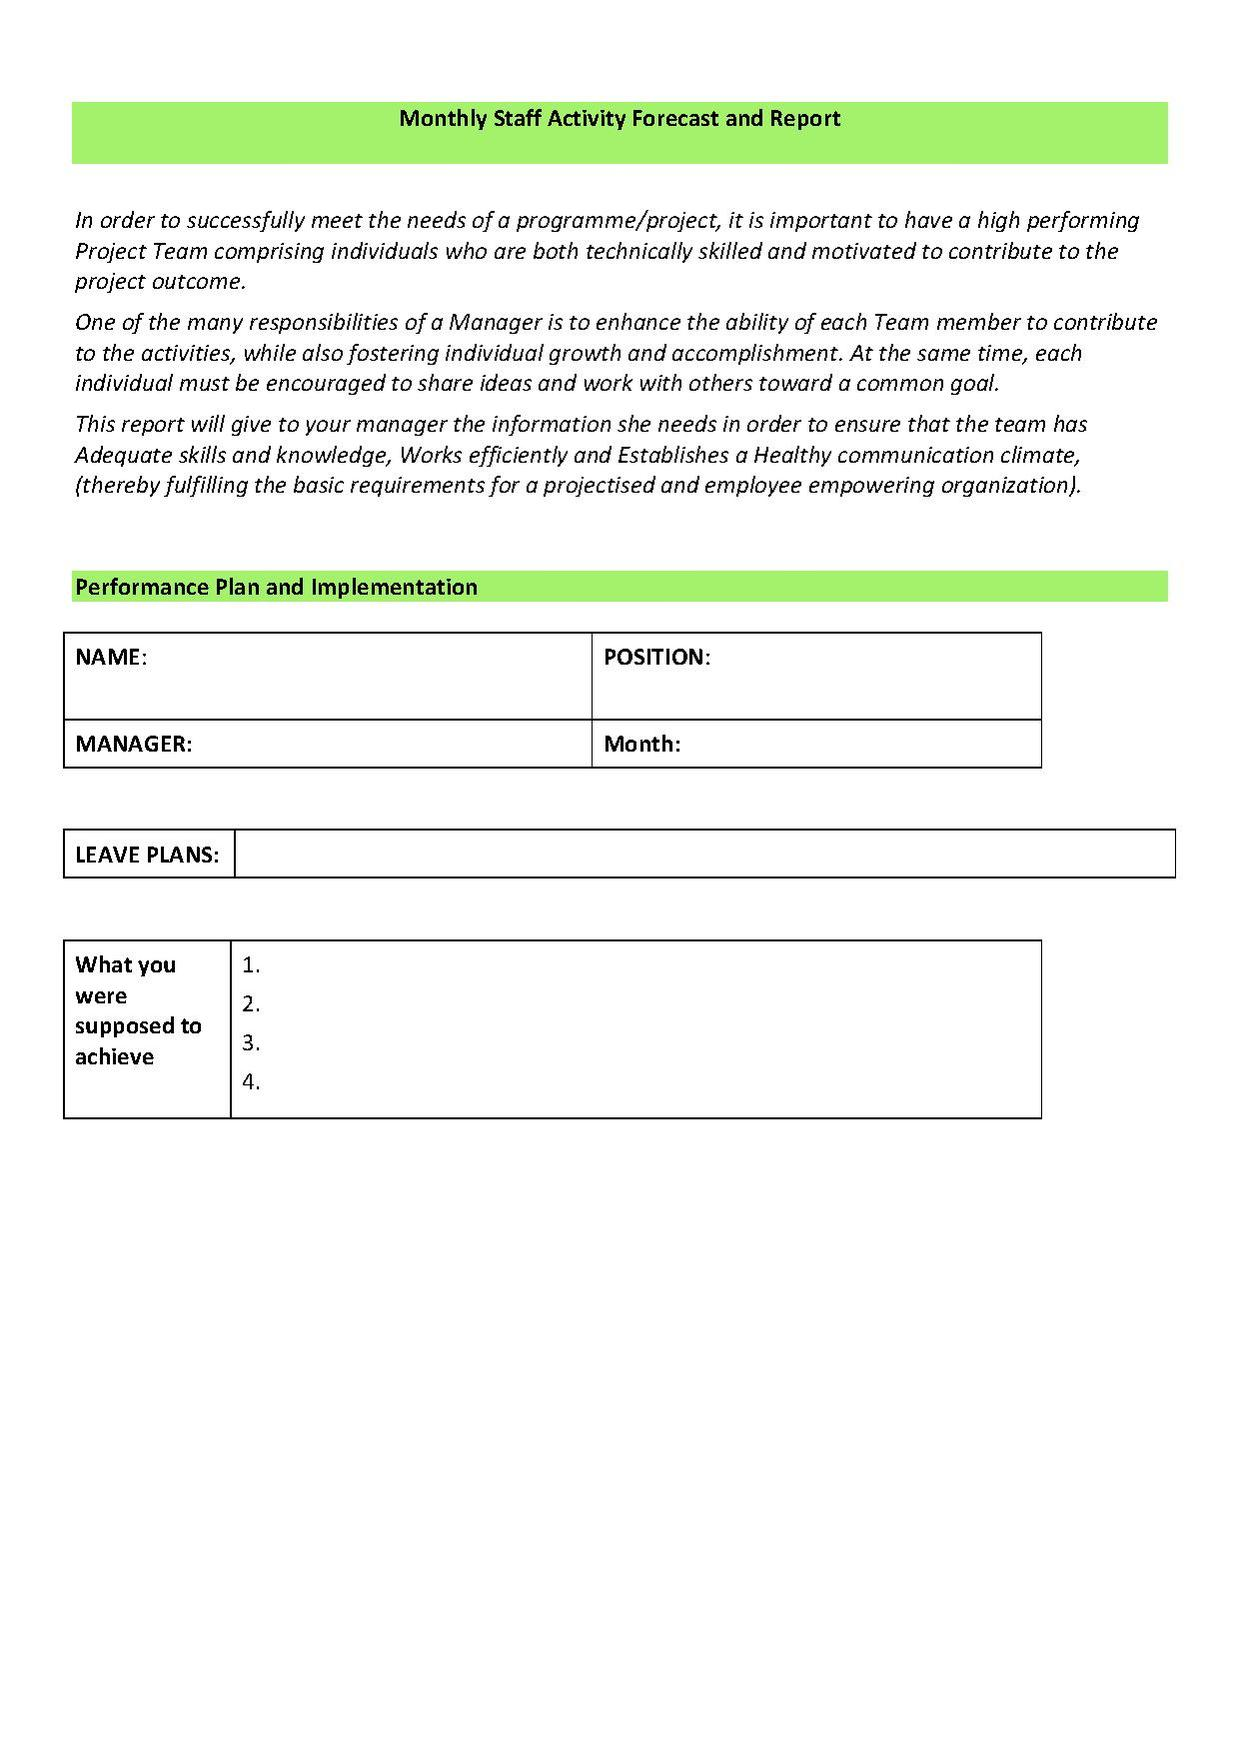 File:Employee Performance Review Template.pdf - Wikimedia Commons